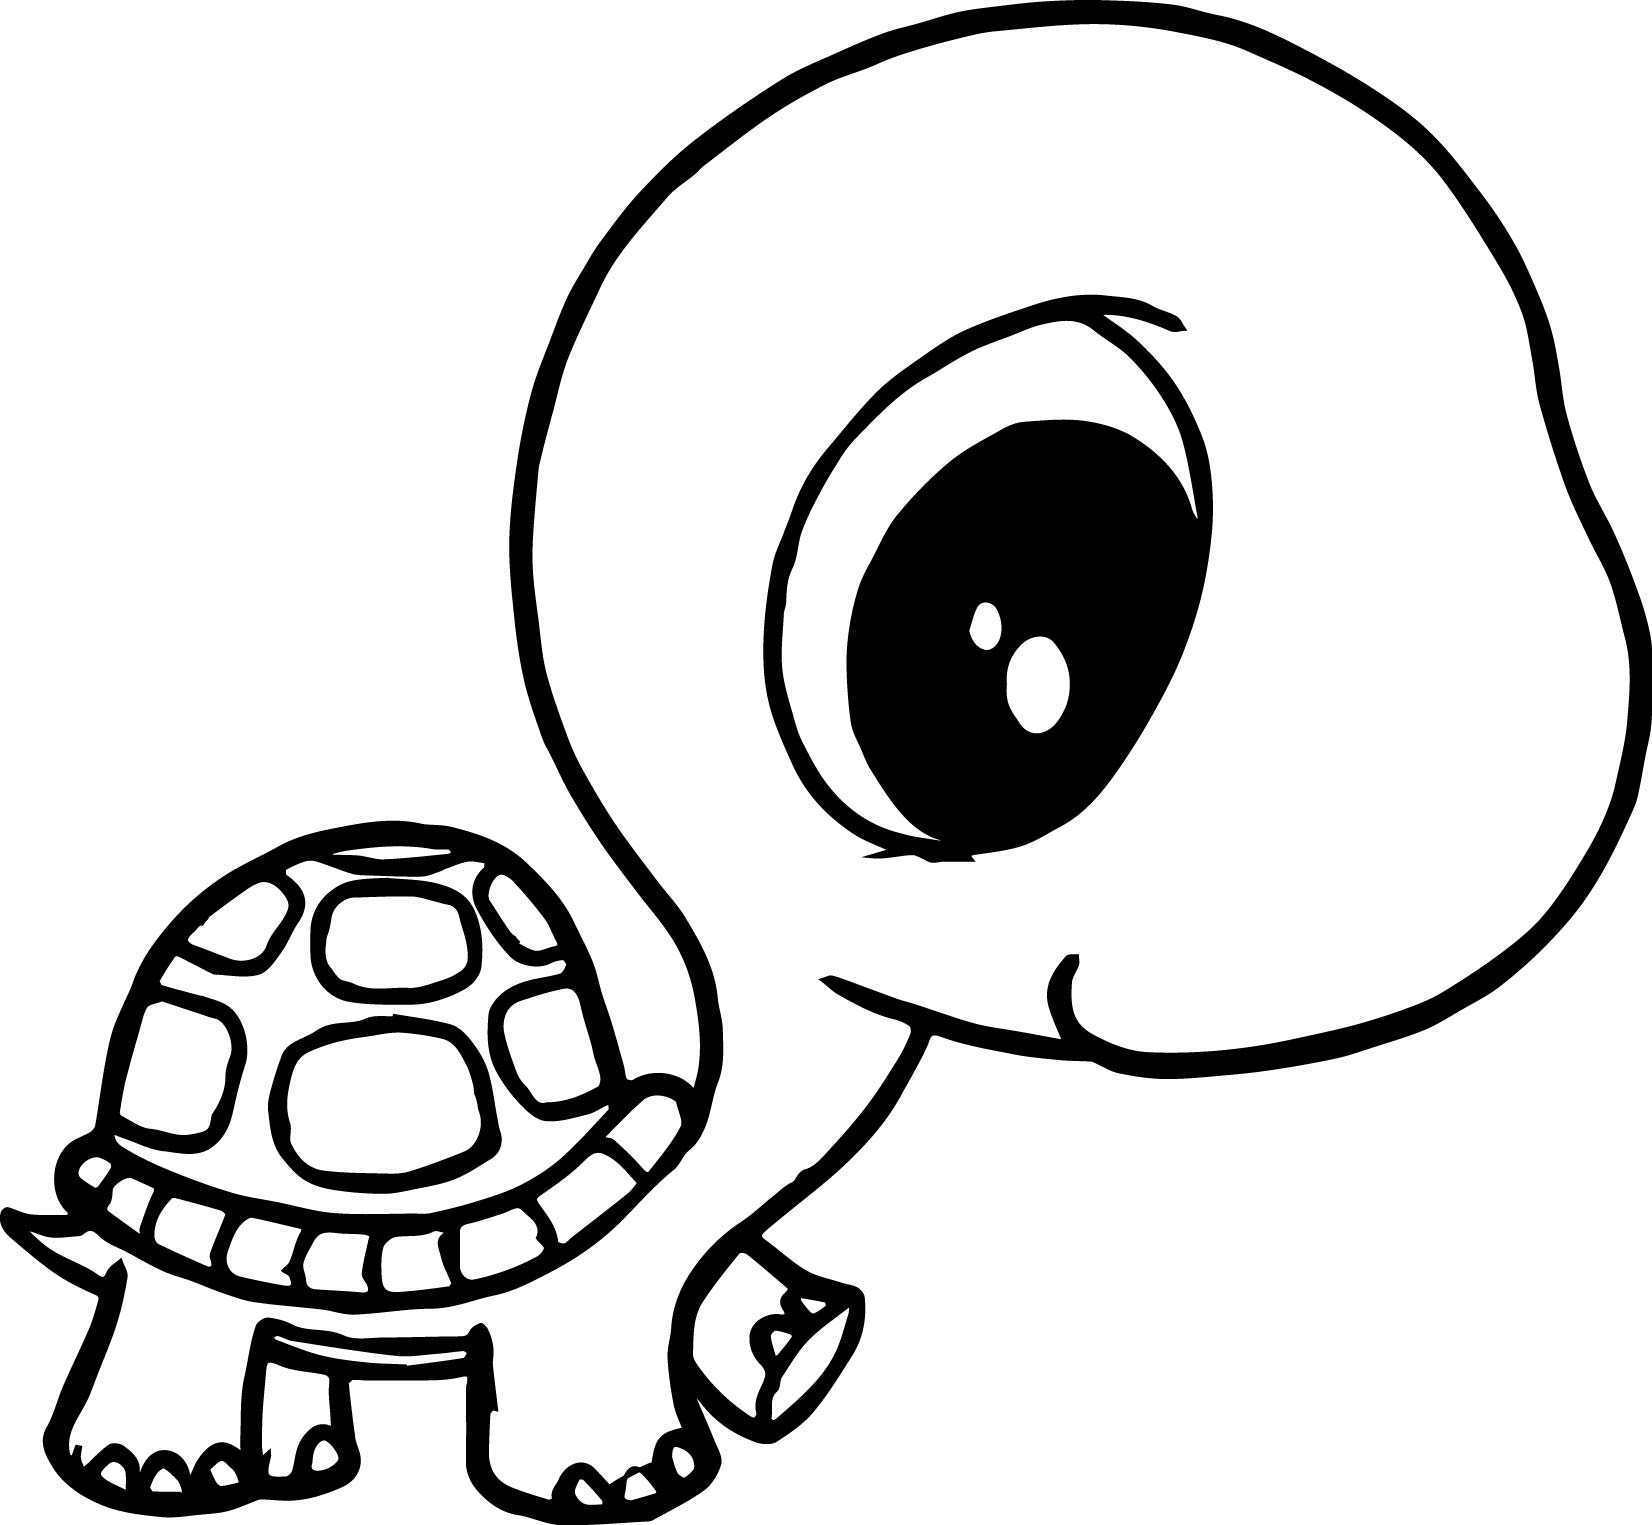 Big head small body tortoise turtle coloring page for Coloring page turtle